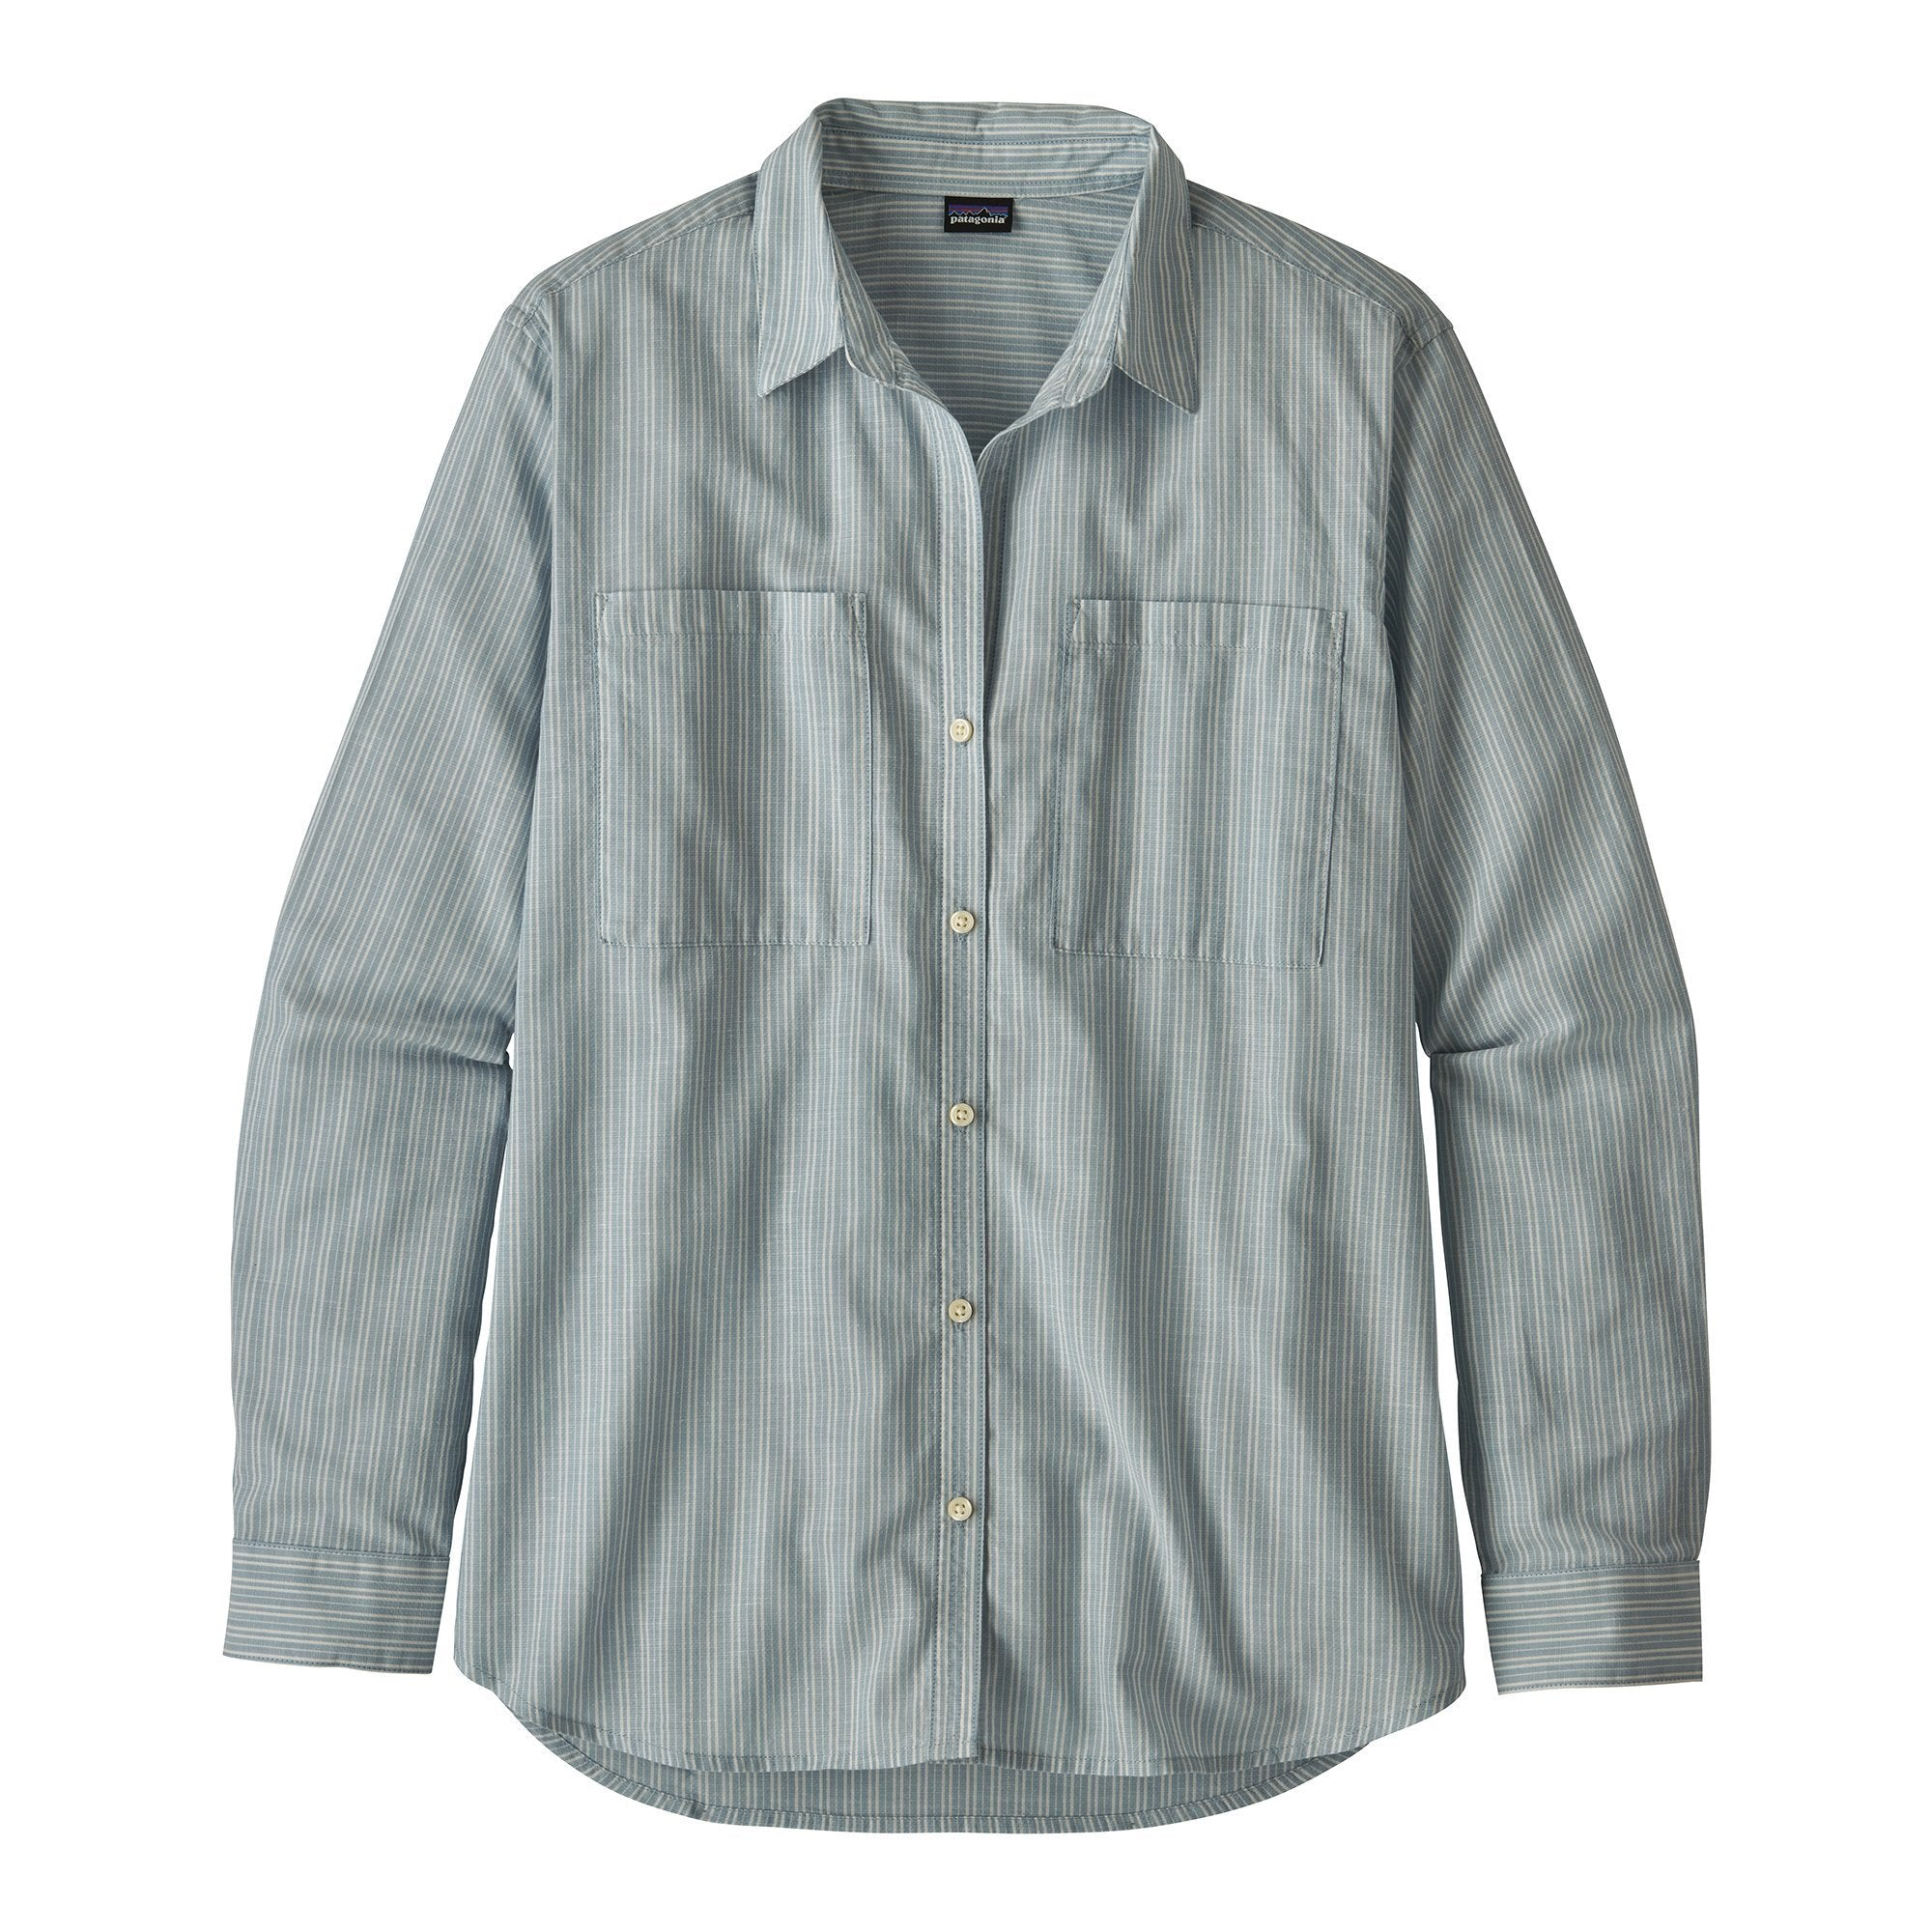 Lightweight A/C Buttondown Shirt - Berlin Blue - Dam - Vindpinad